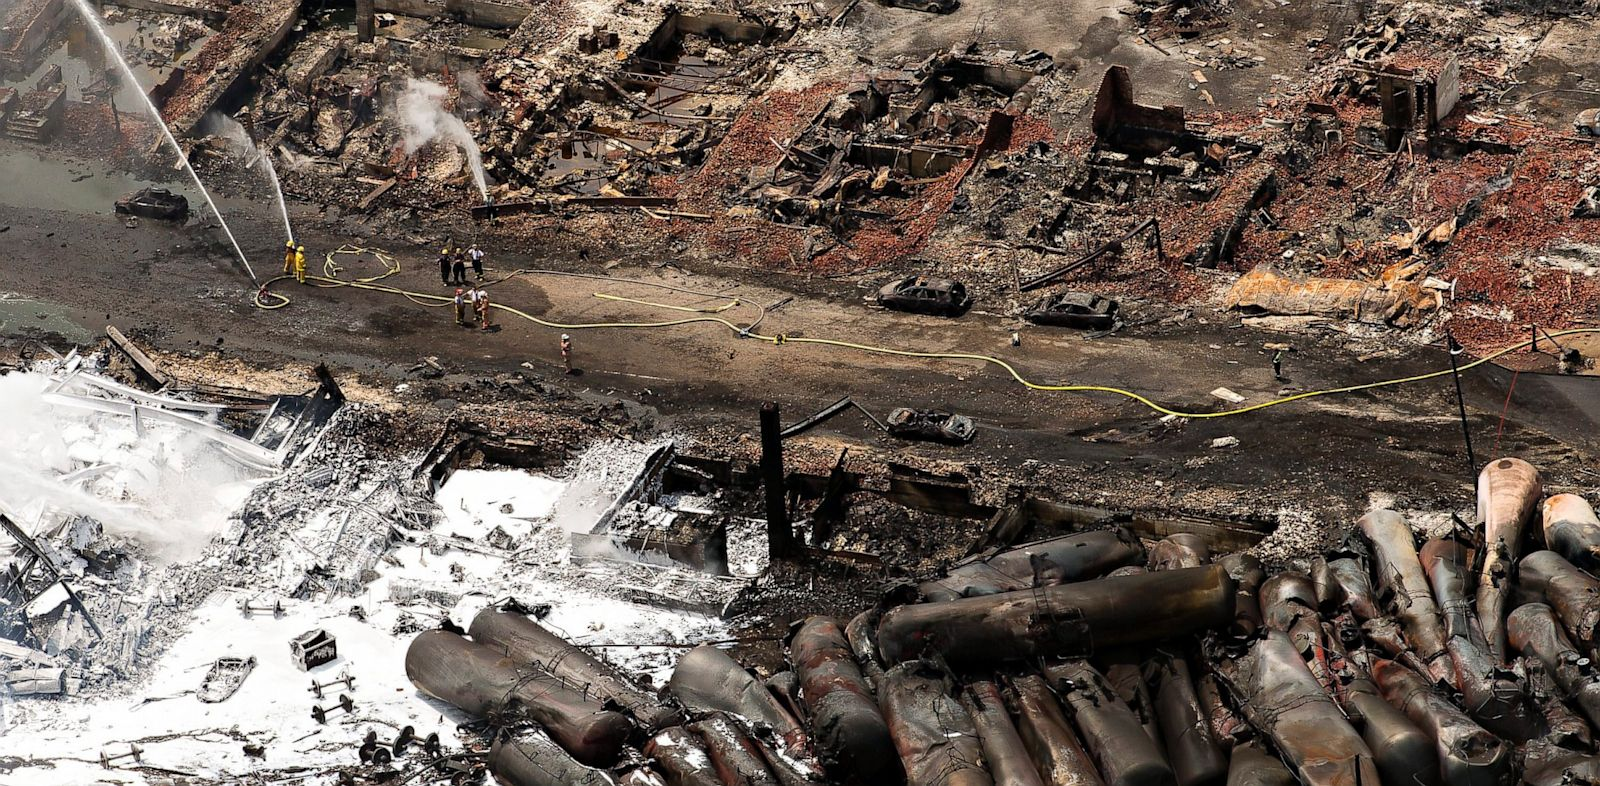 PHOTO: lac megentic, derailment, derailed, train, oil, canada